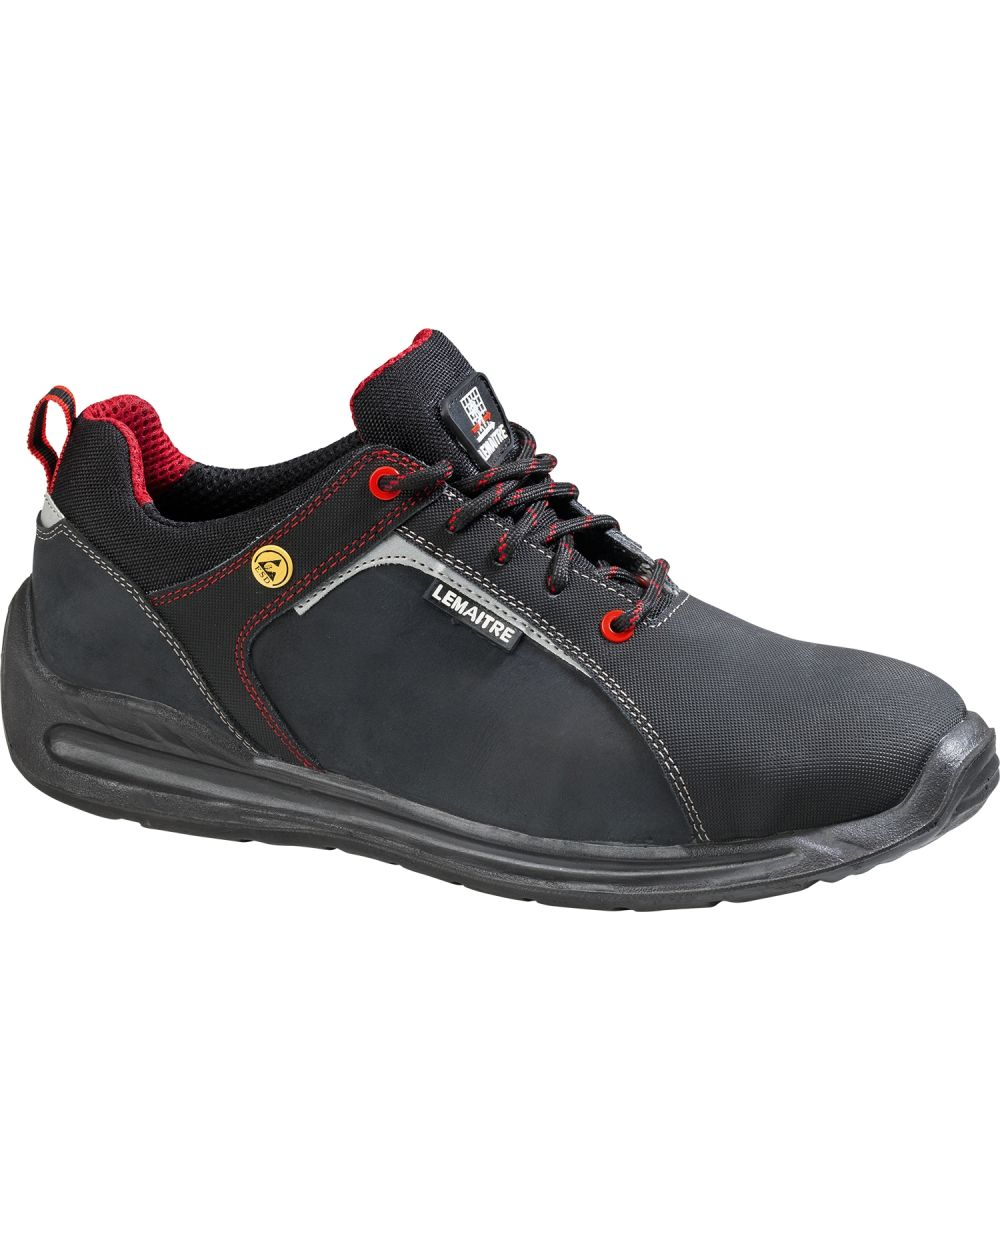 Super X Low - ESD Safety Trainer